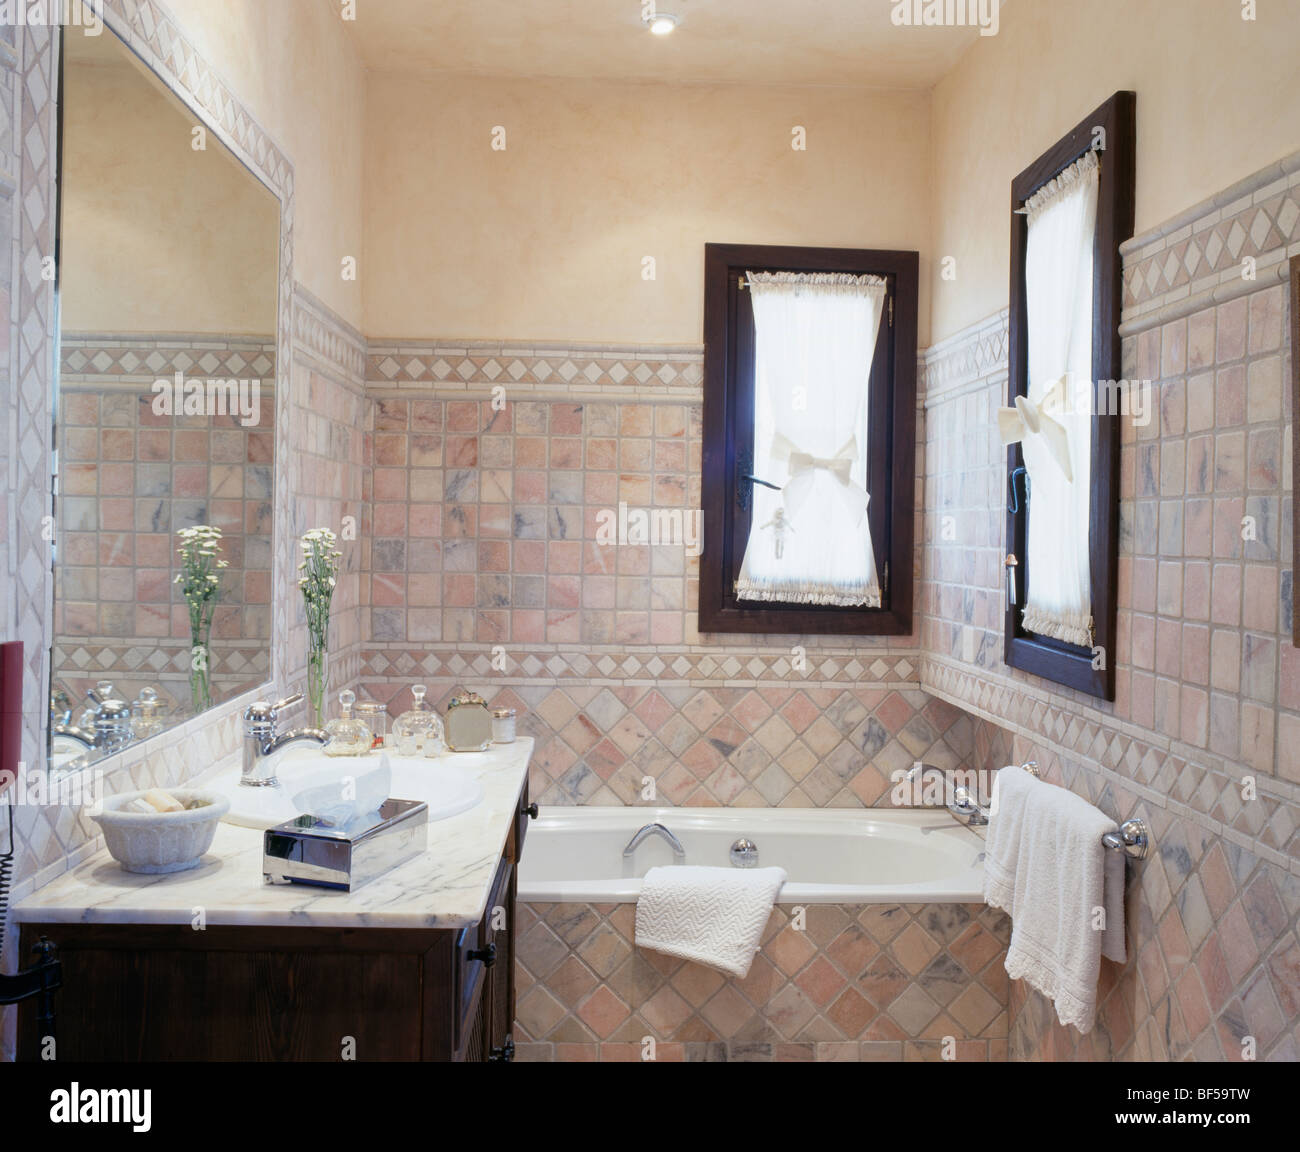 Miroir Salle De Bain Woodstock ~ Bathroom Tiling Neutral Neutrals Photos Bathroom Tiling Neutral